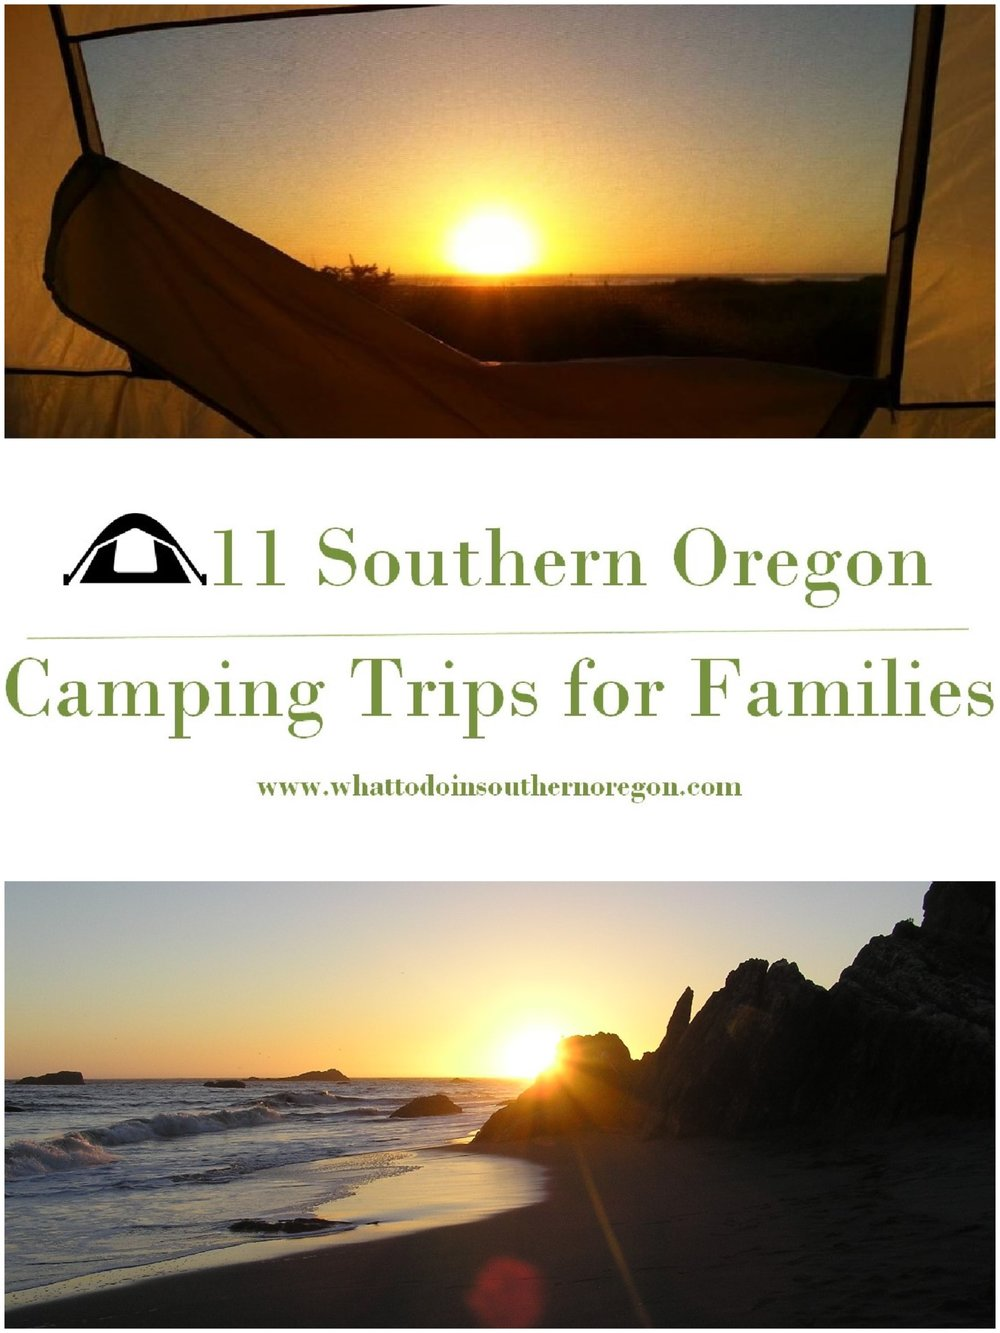 11 Southern Oregon Camping Trips for the Family